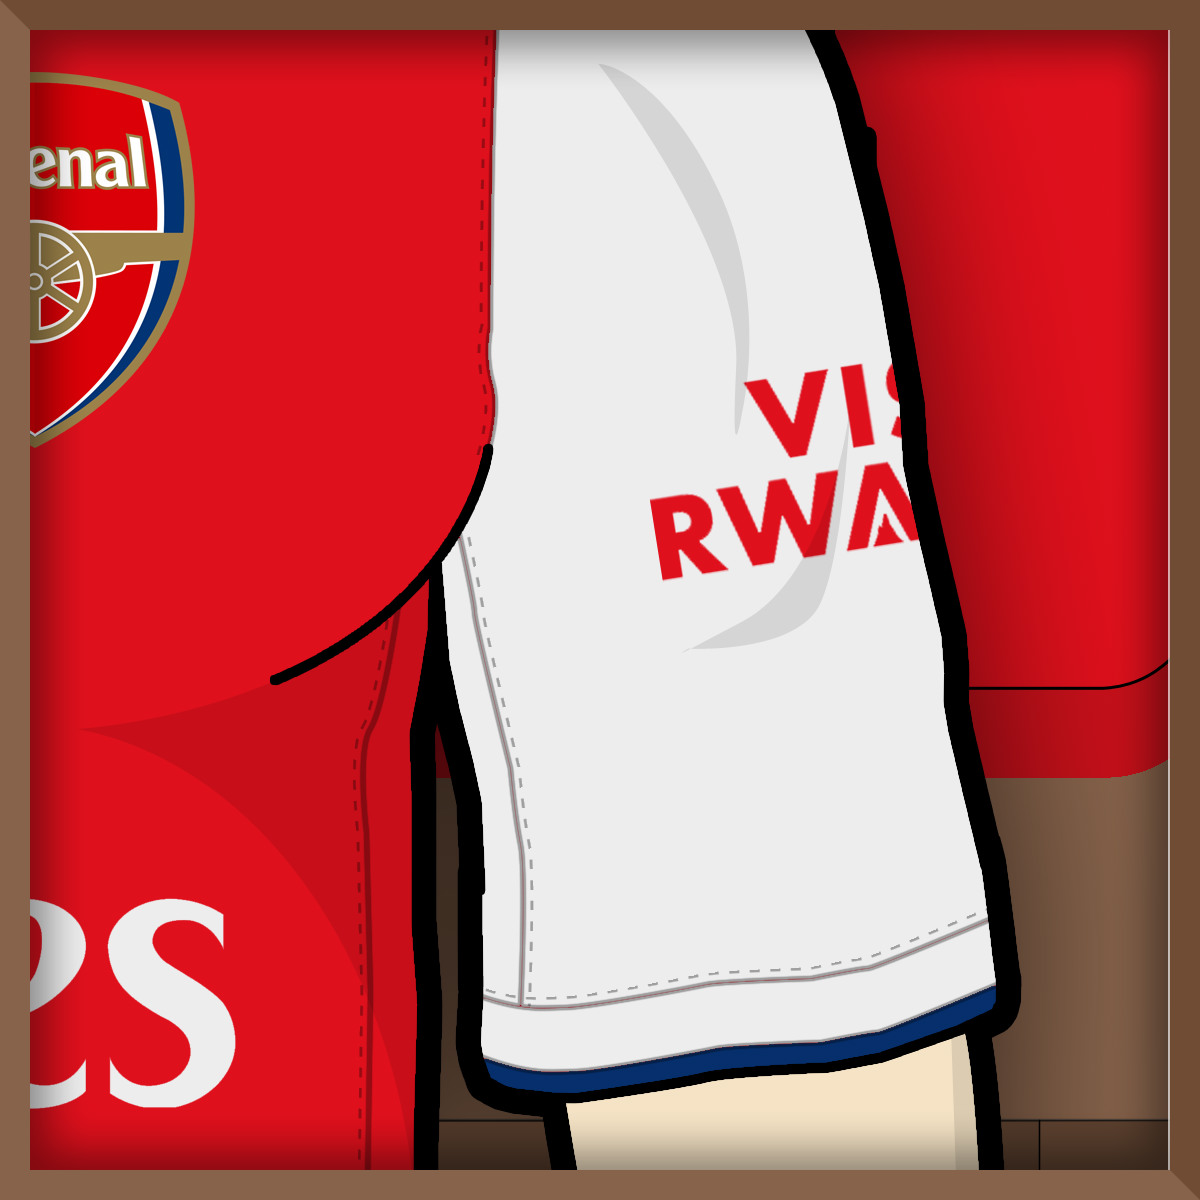 ... Click to enlarge image arsenal 19 20 home kit prediction b.jpg ... 11d9c48eb